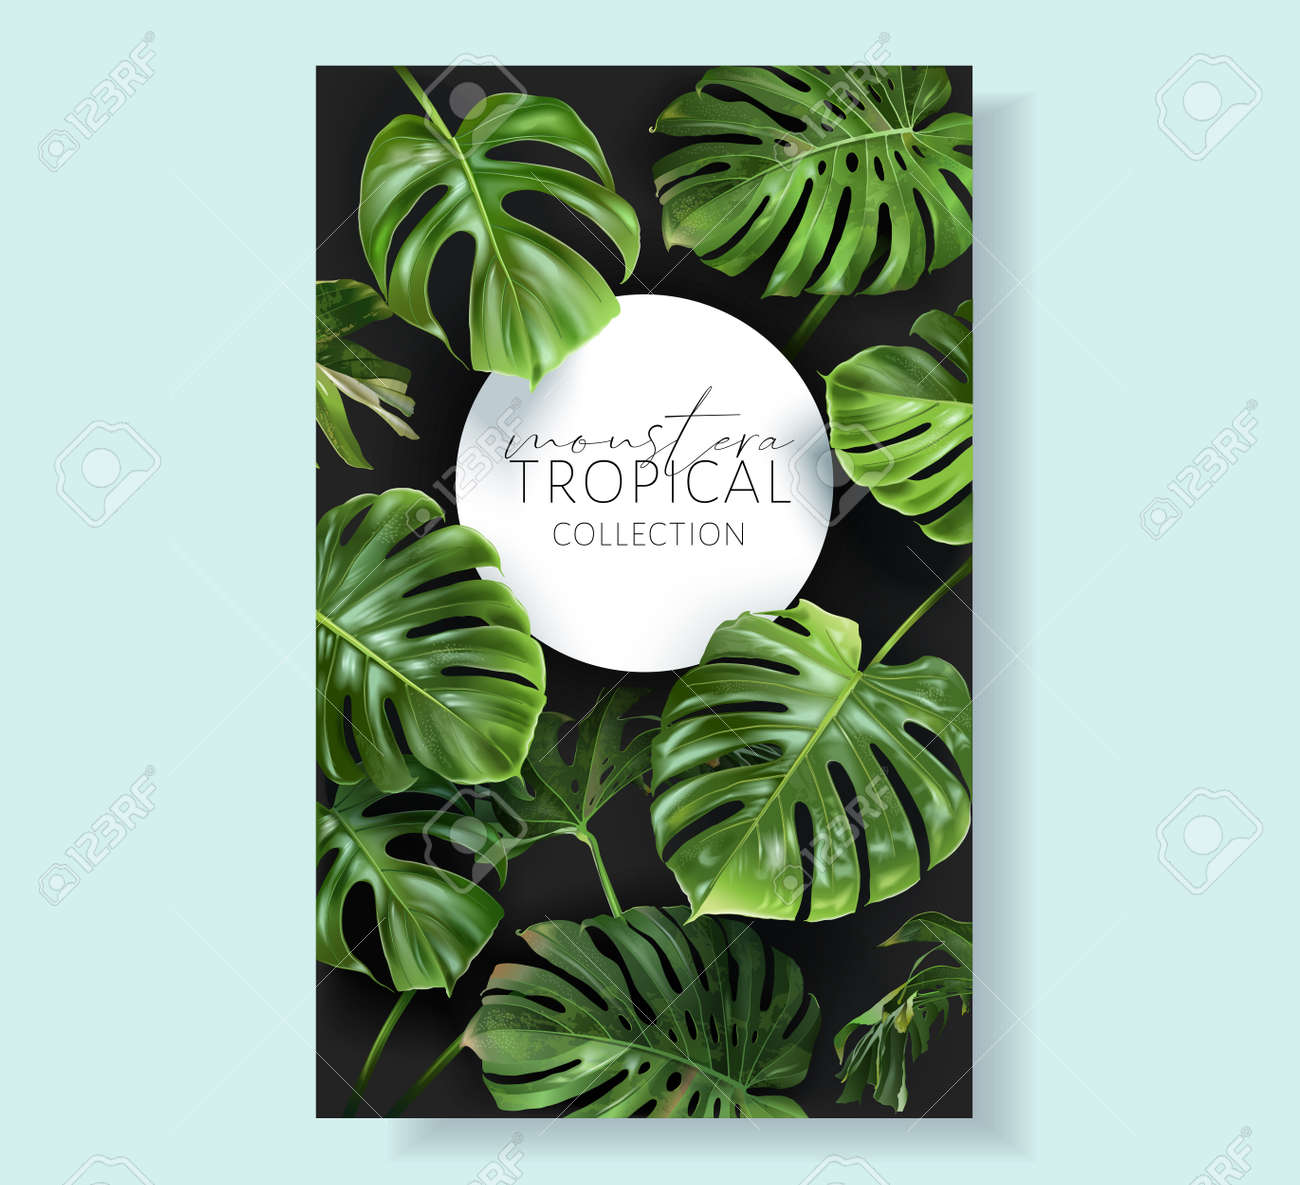 Vector monstera frame with green tropical leaves - 153377129